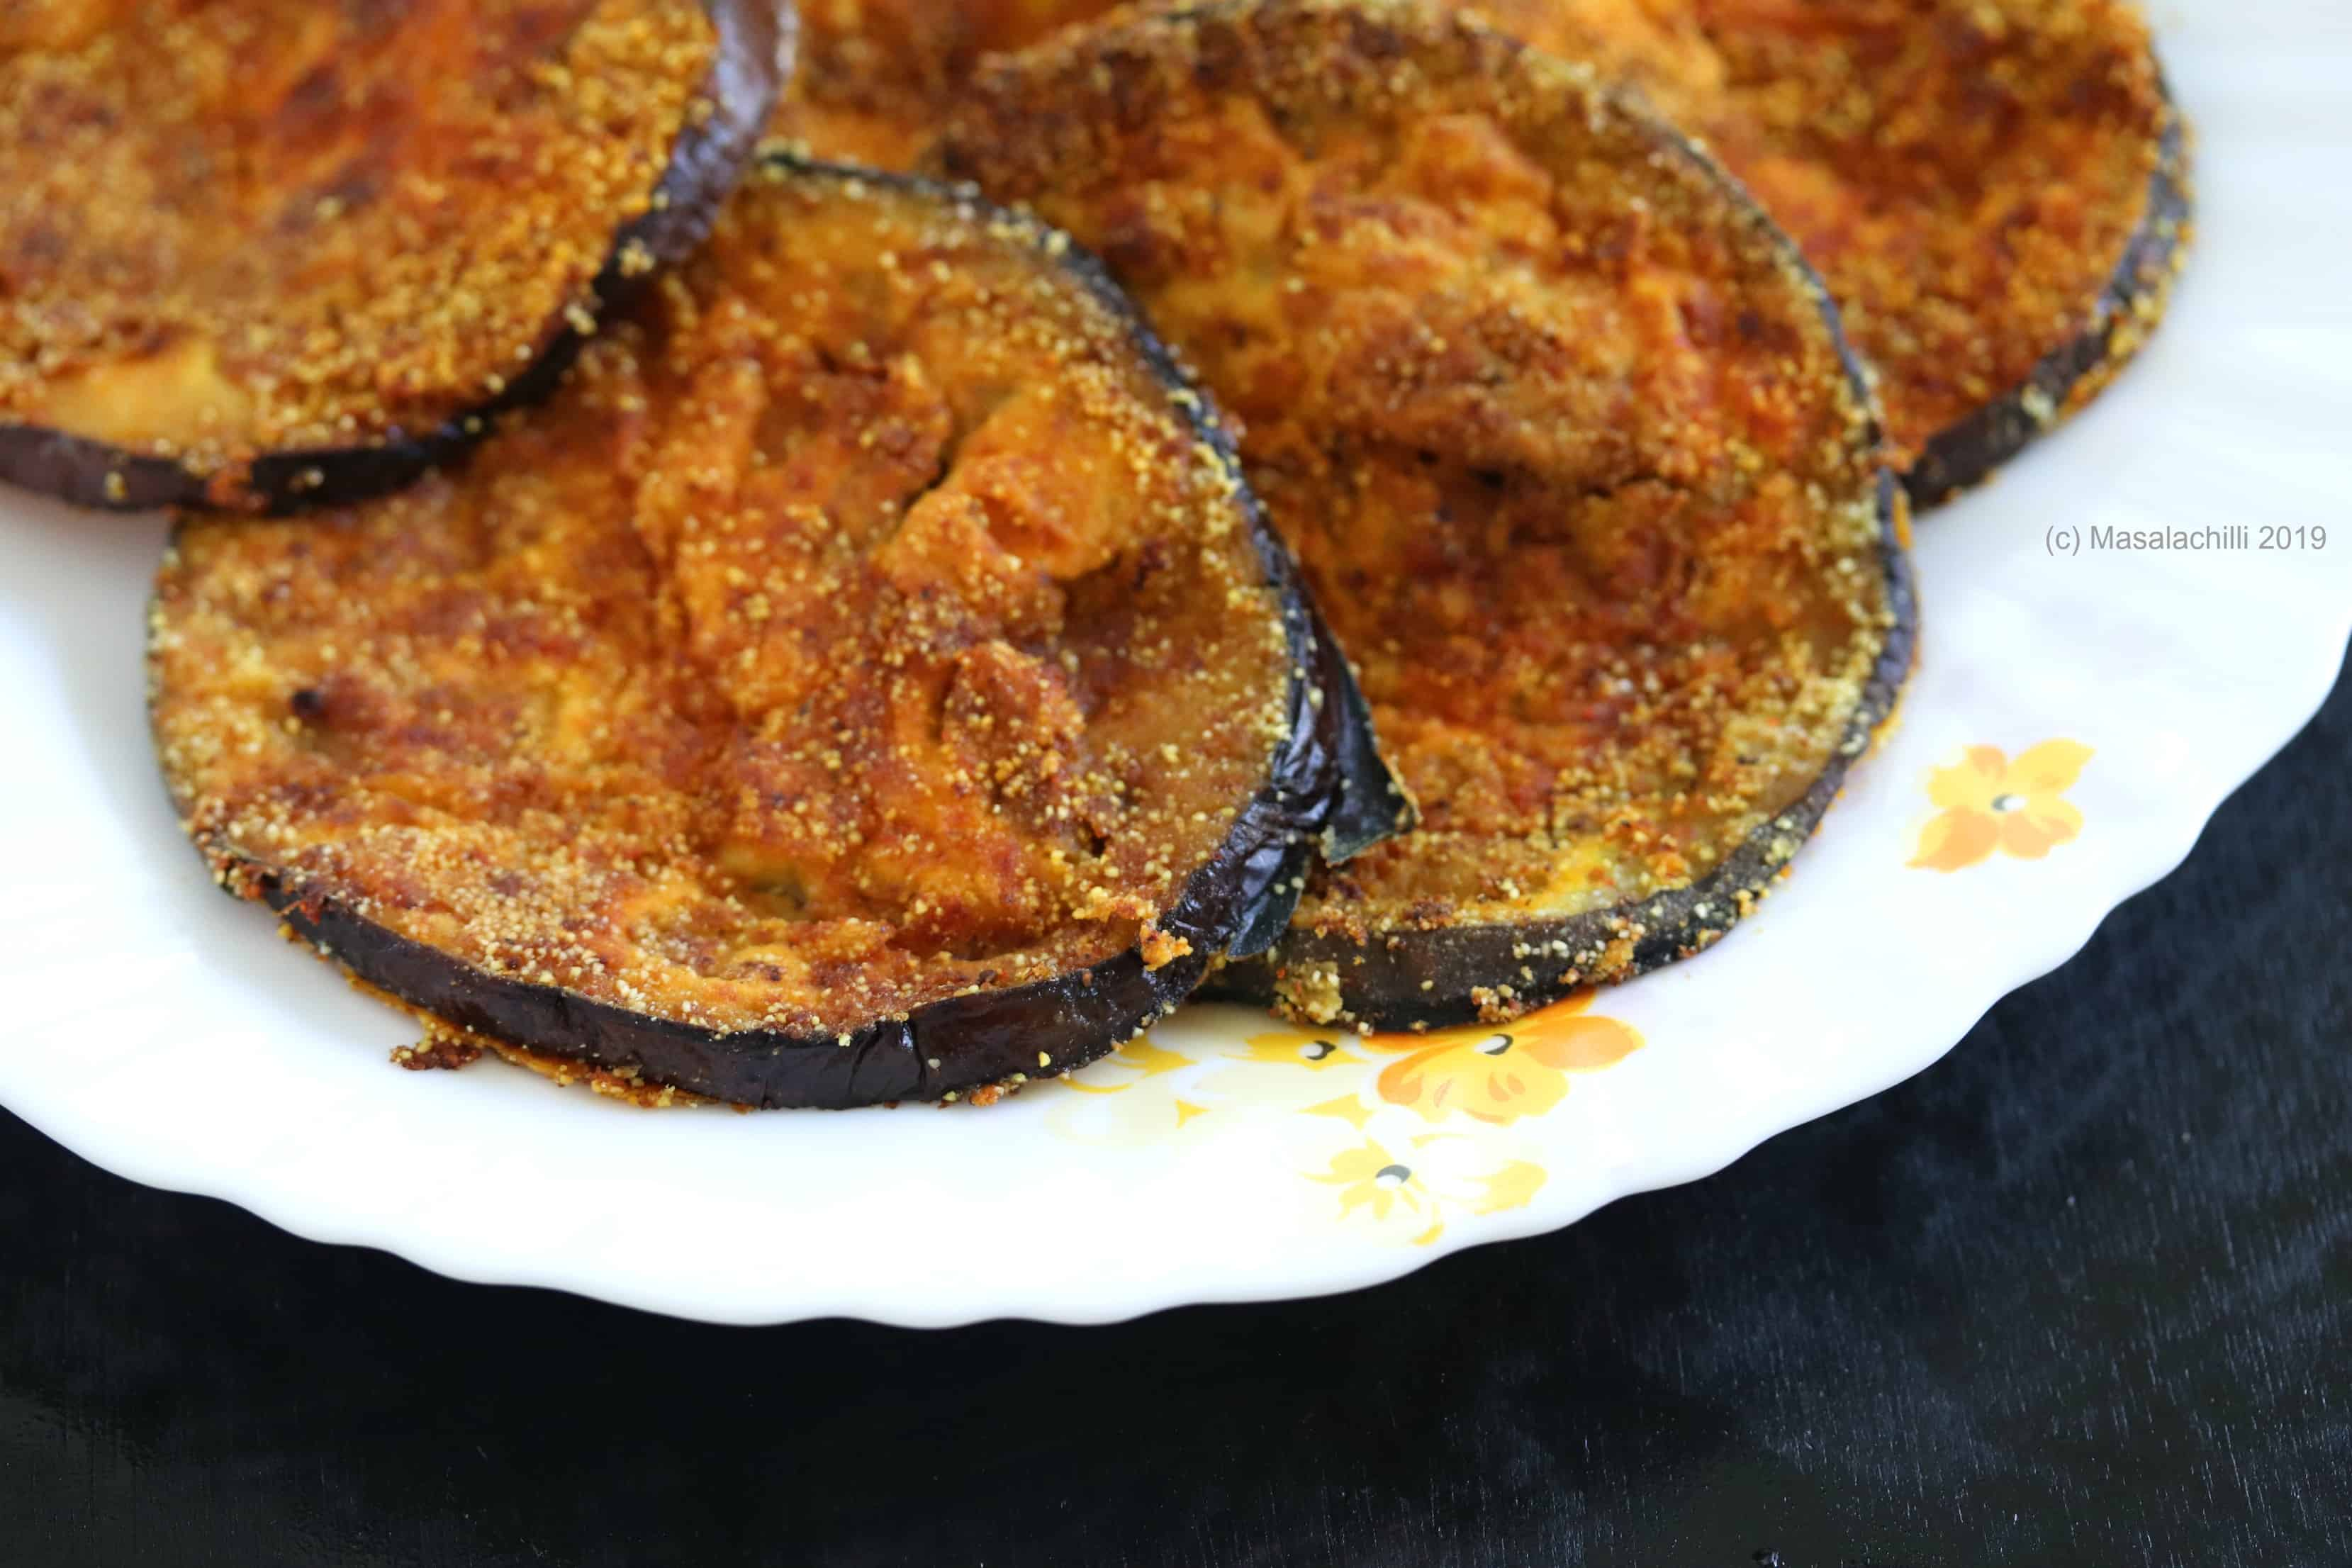 Aubergine pan fried best eaten with dal rice